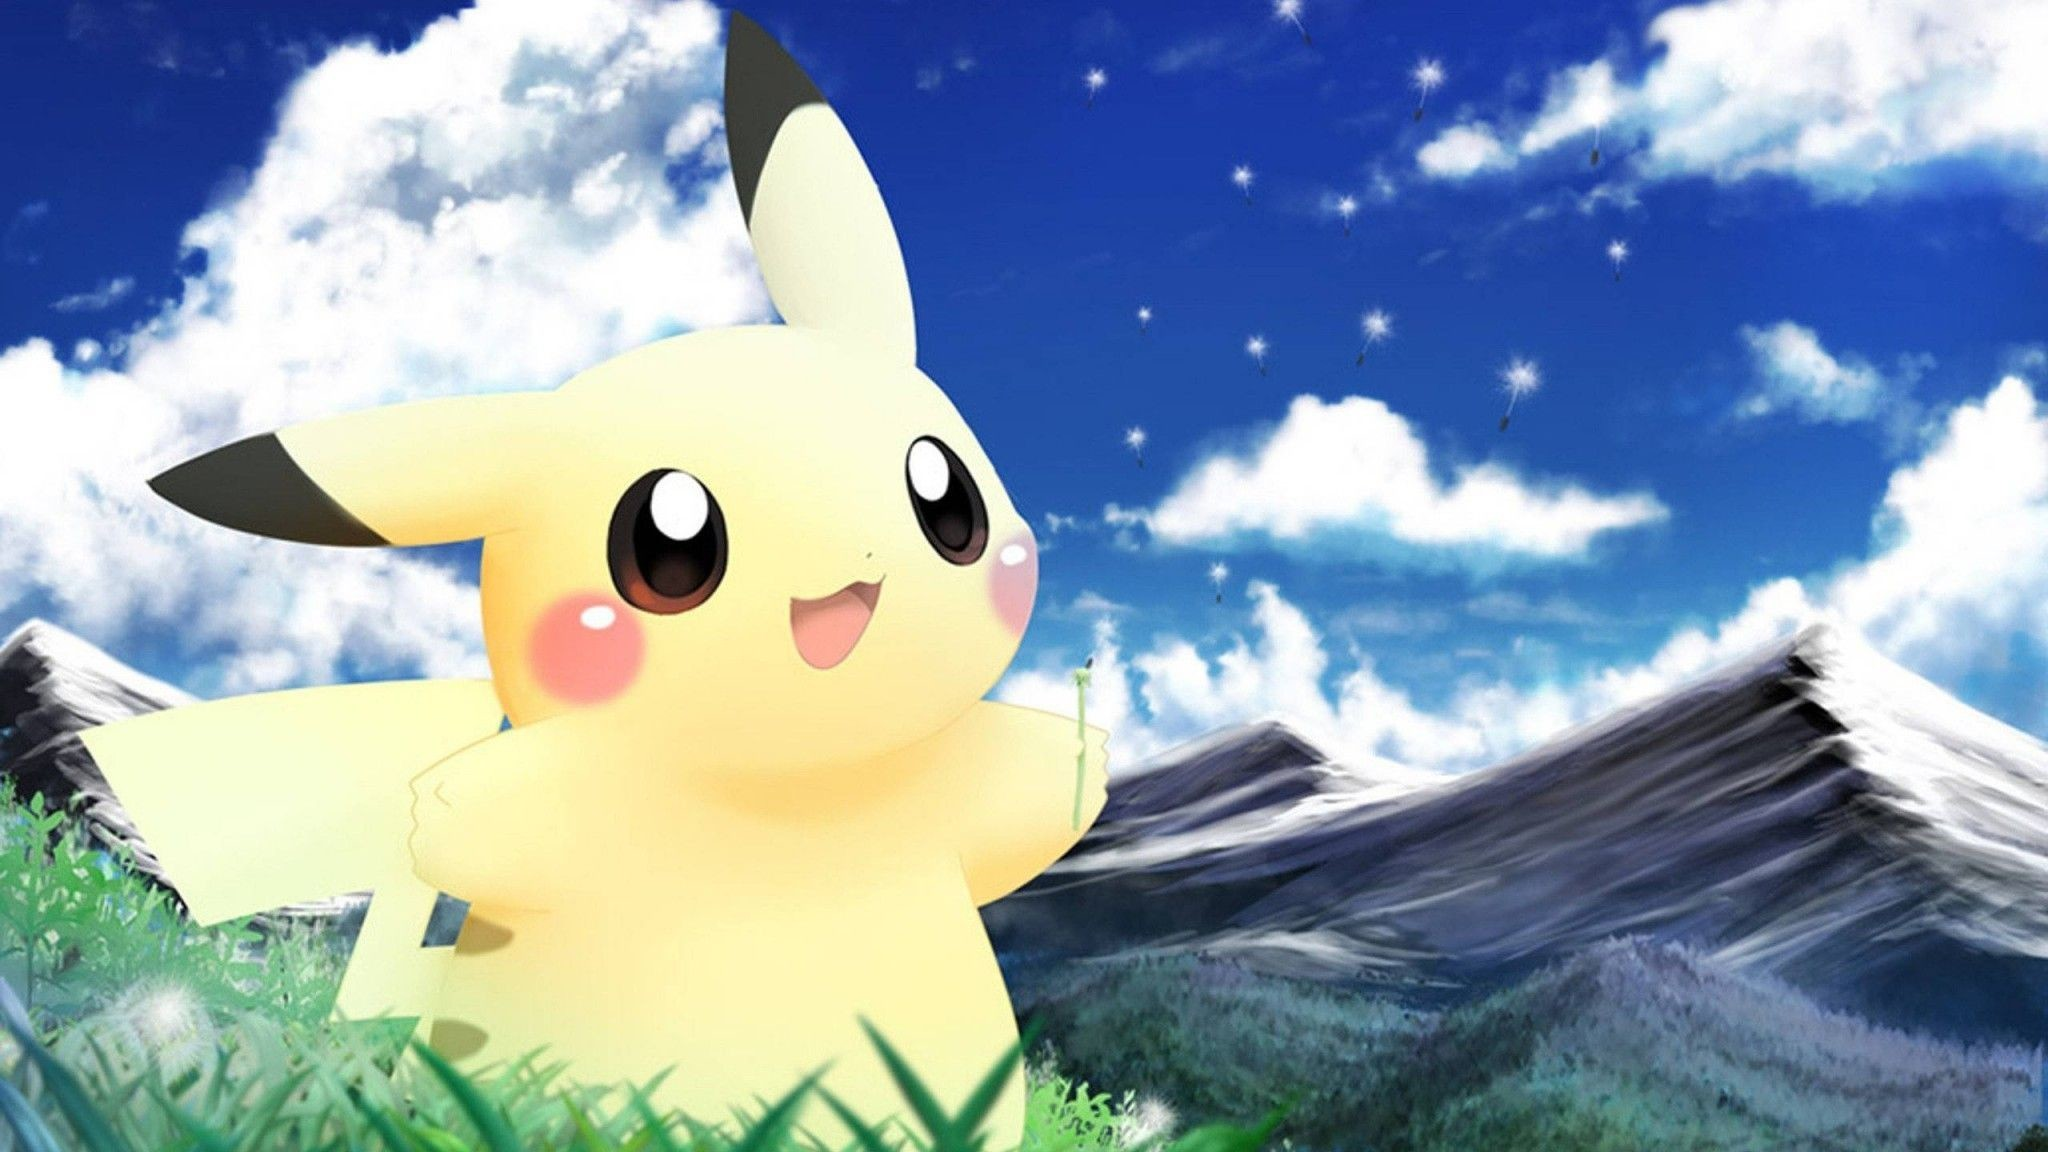 Res: 2048x1152, Pikachu, Clouds - Wallpapers – yoyowall.com